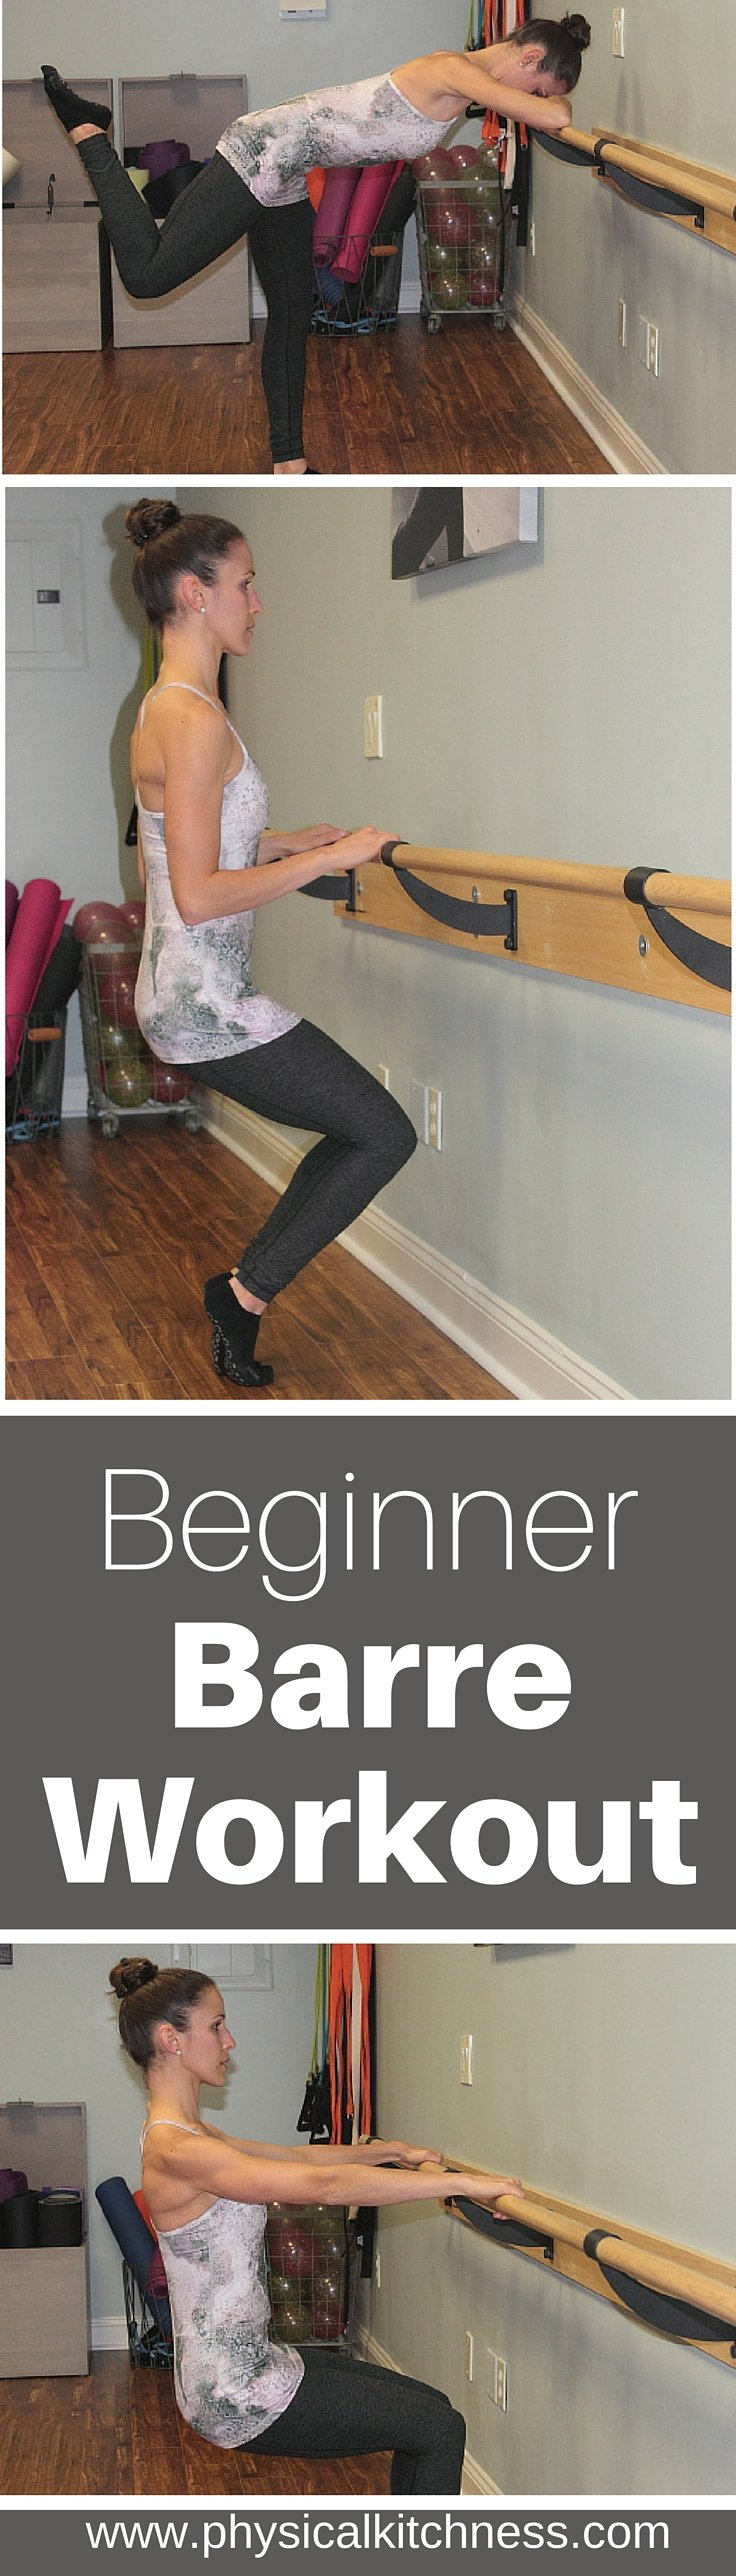 Have you ever wanted to try barre? Check out this beginner, at-home workout and form guide!